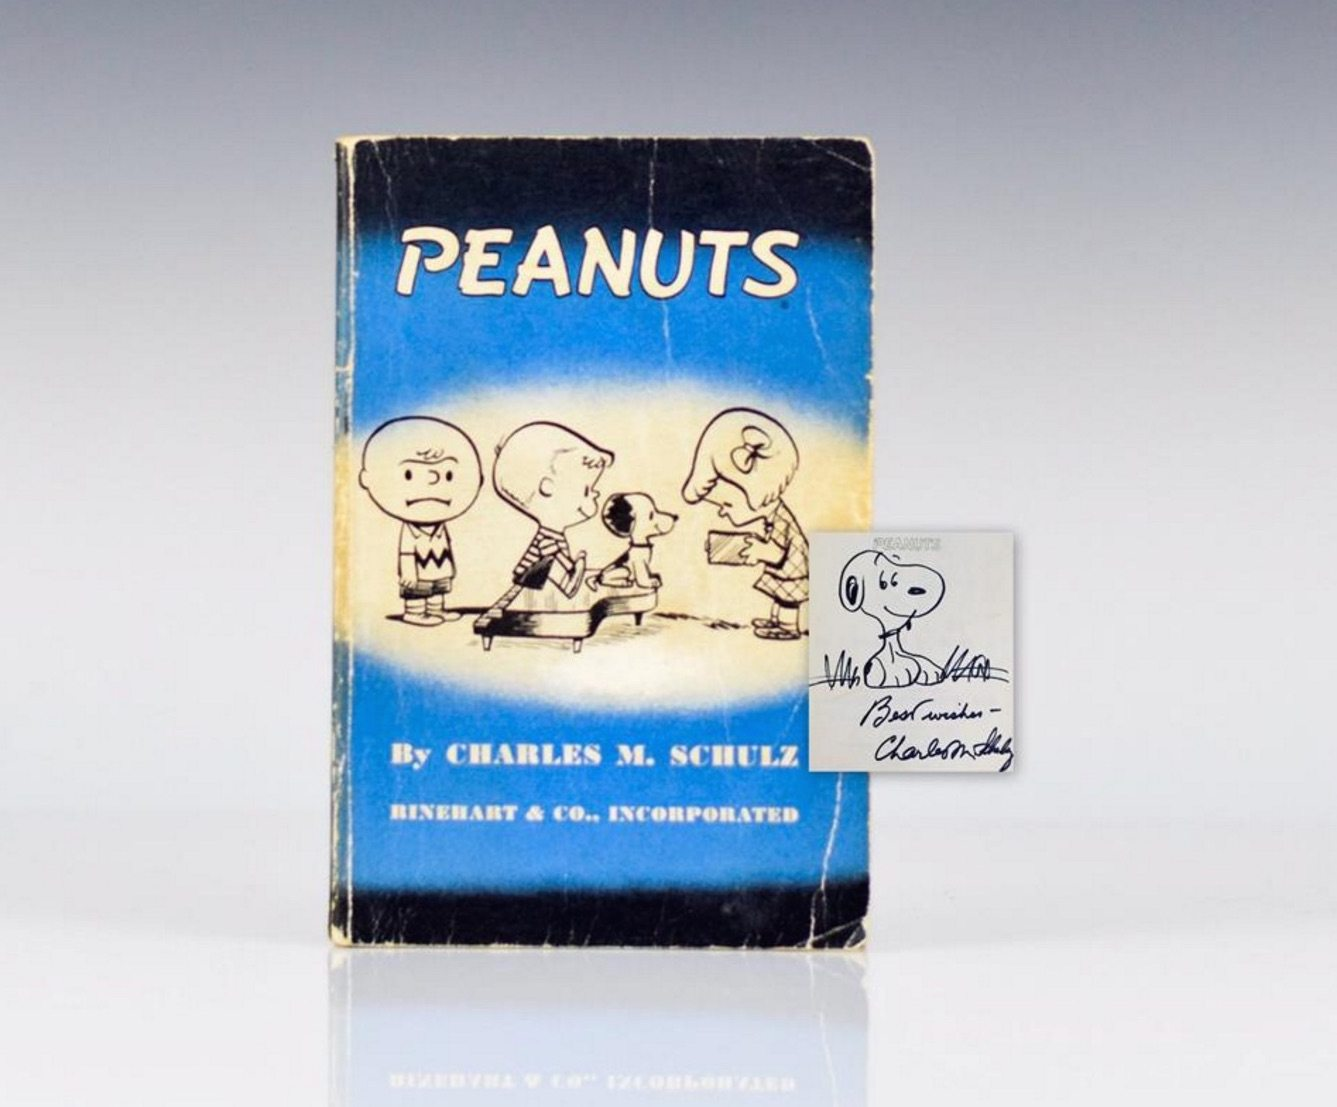 First Edition of Peanuts by Charles Schulz